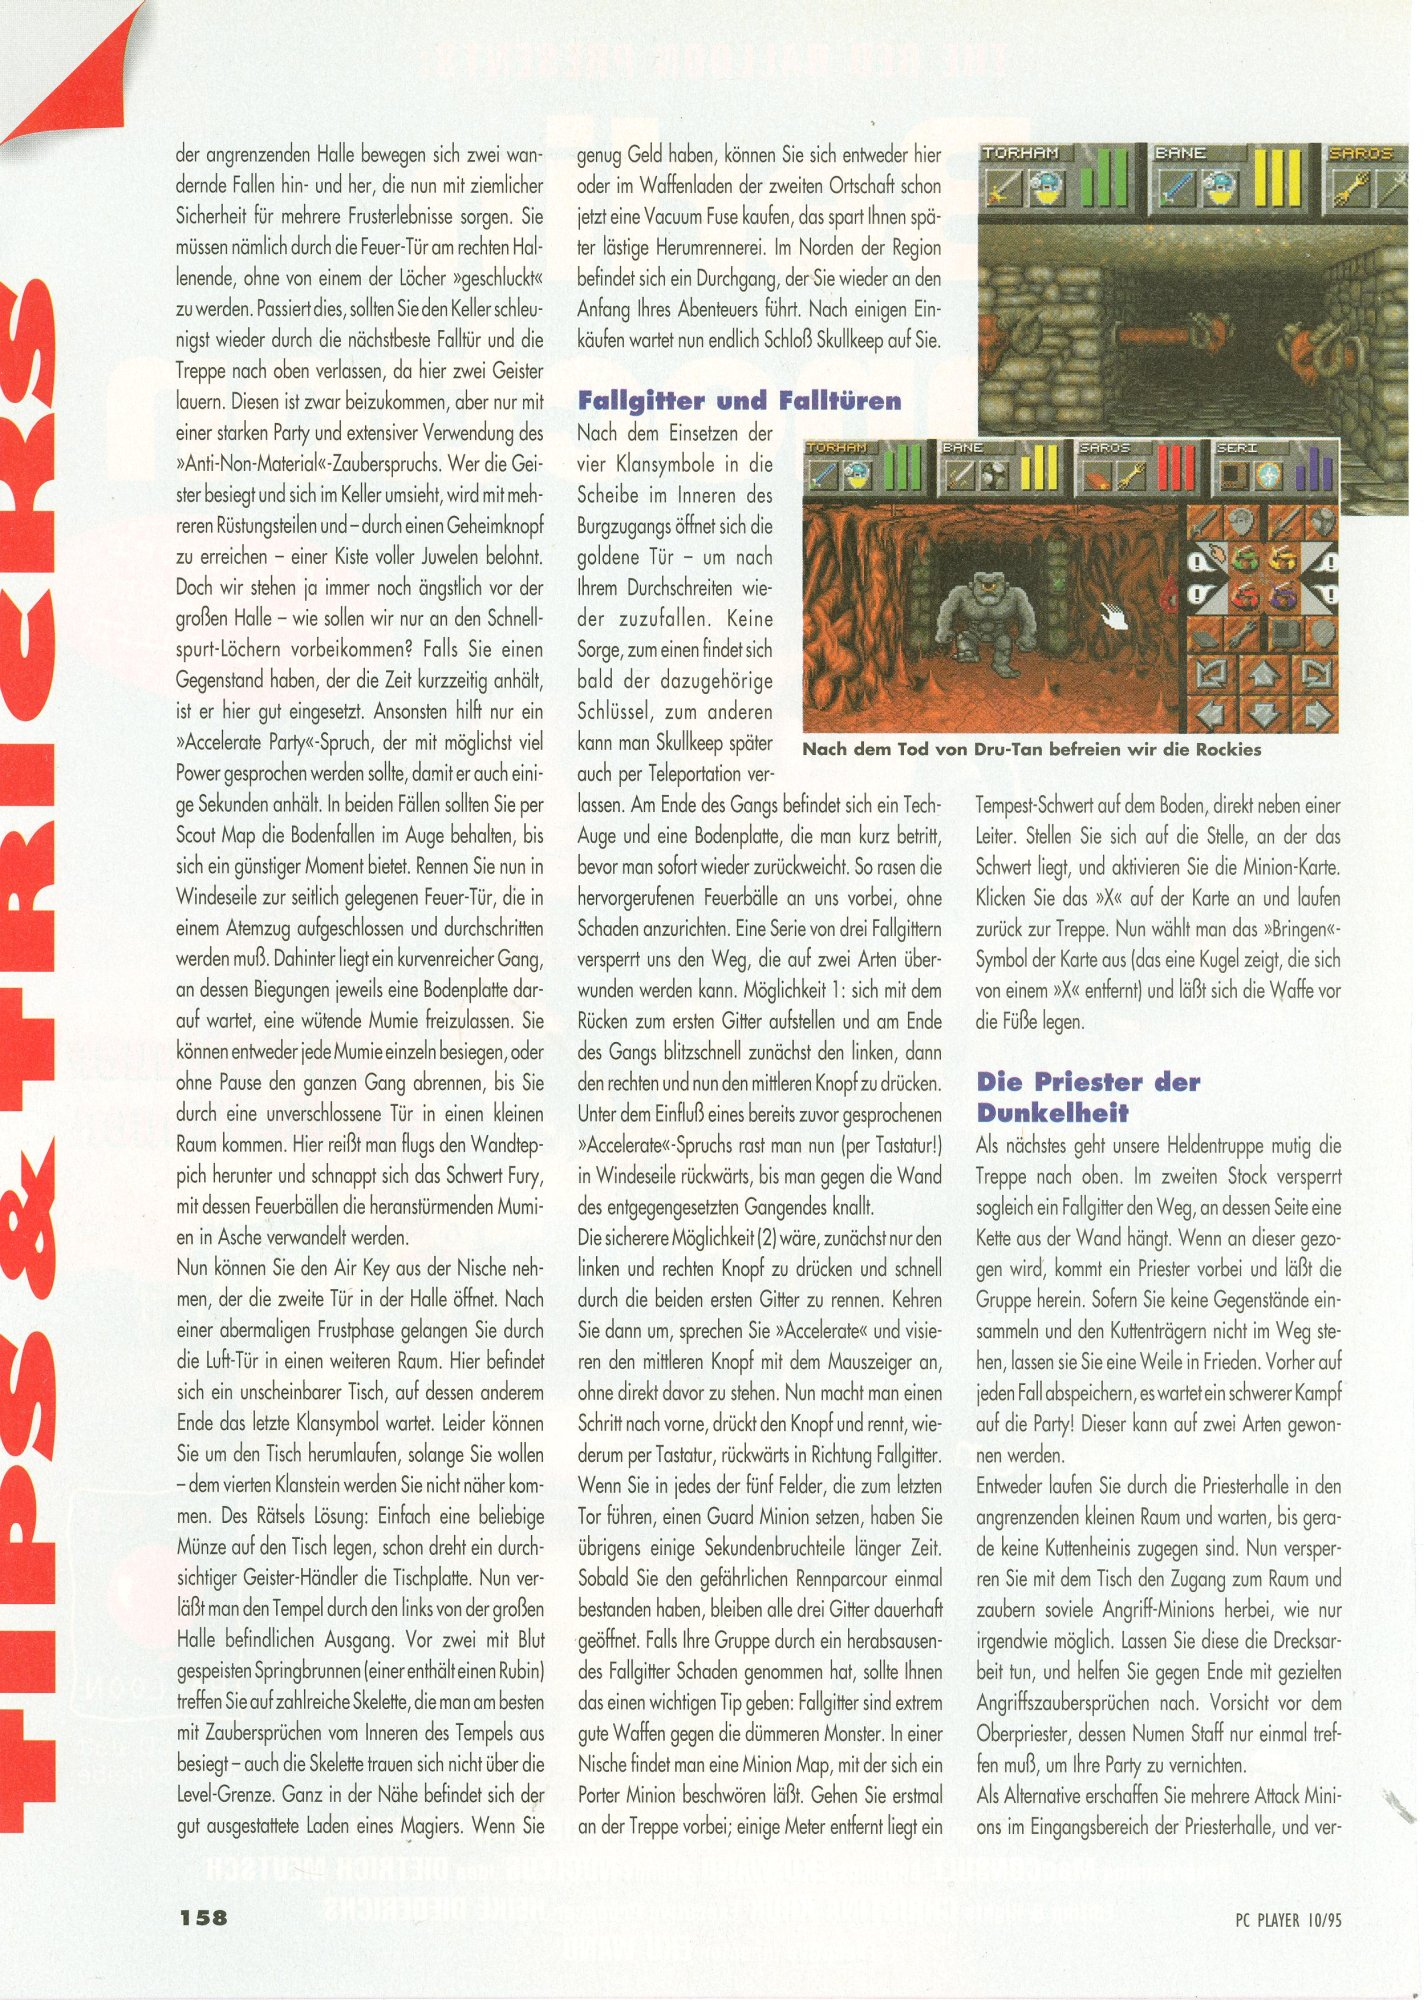 Dungeon Master II for PC Guide published in German magazine 'PC Player', October 1995, Page 158